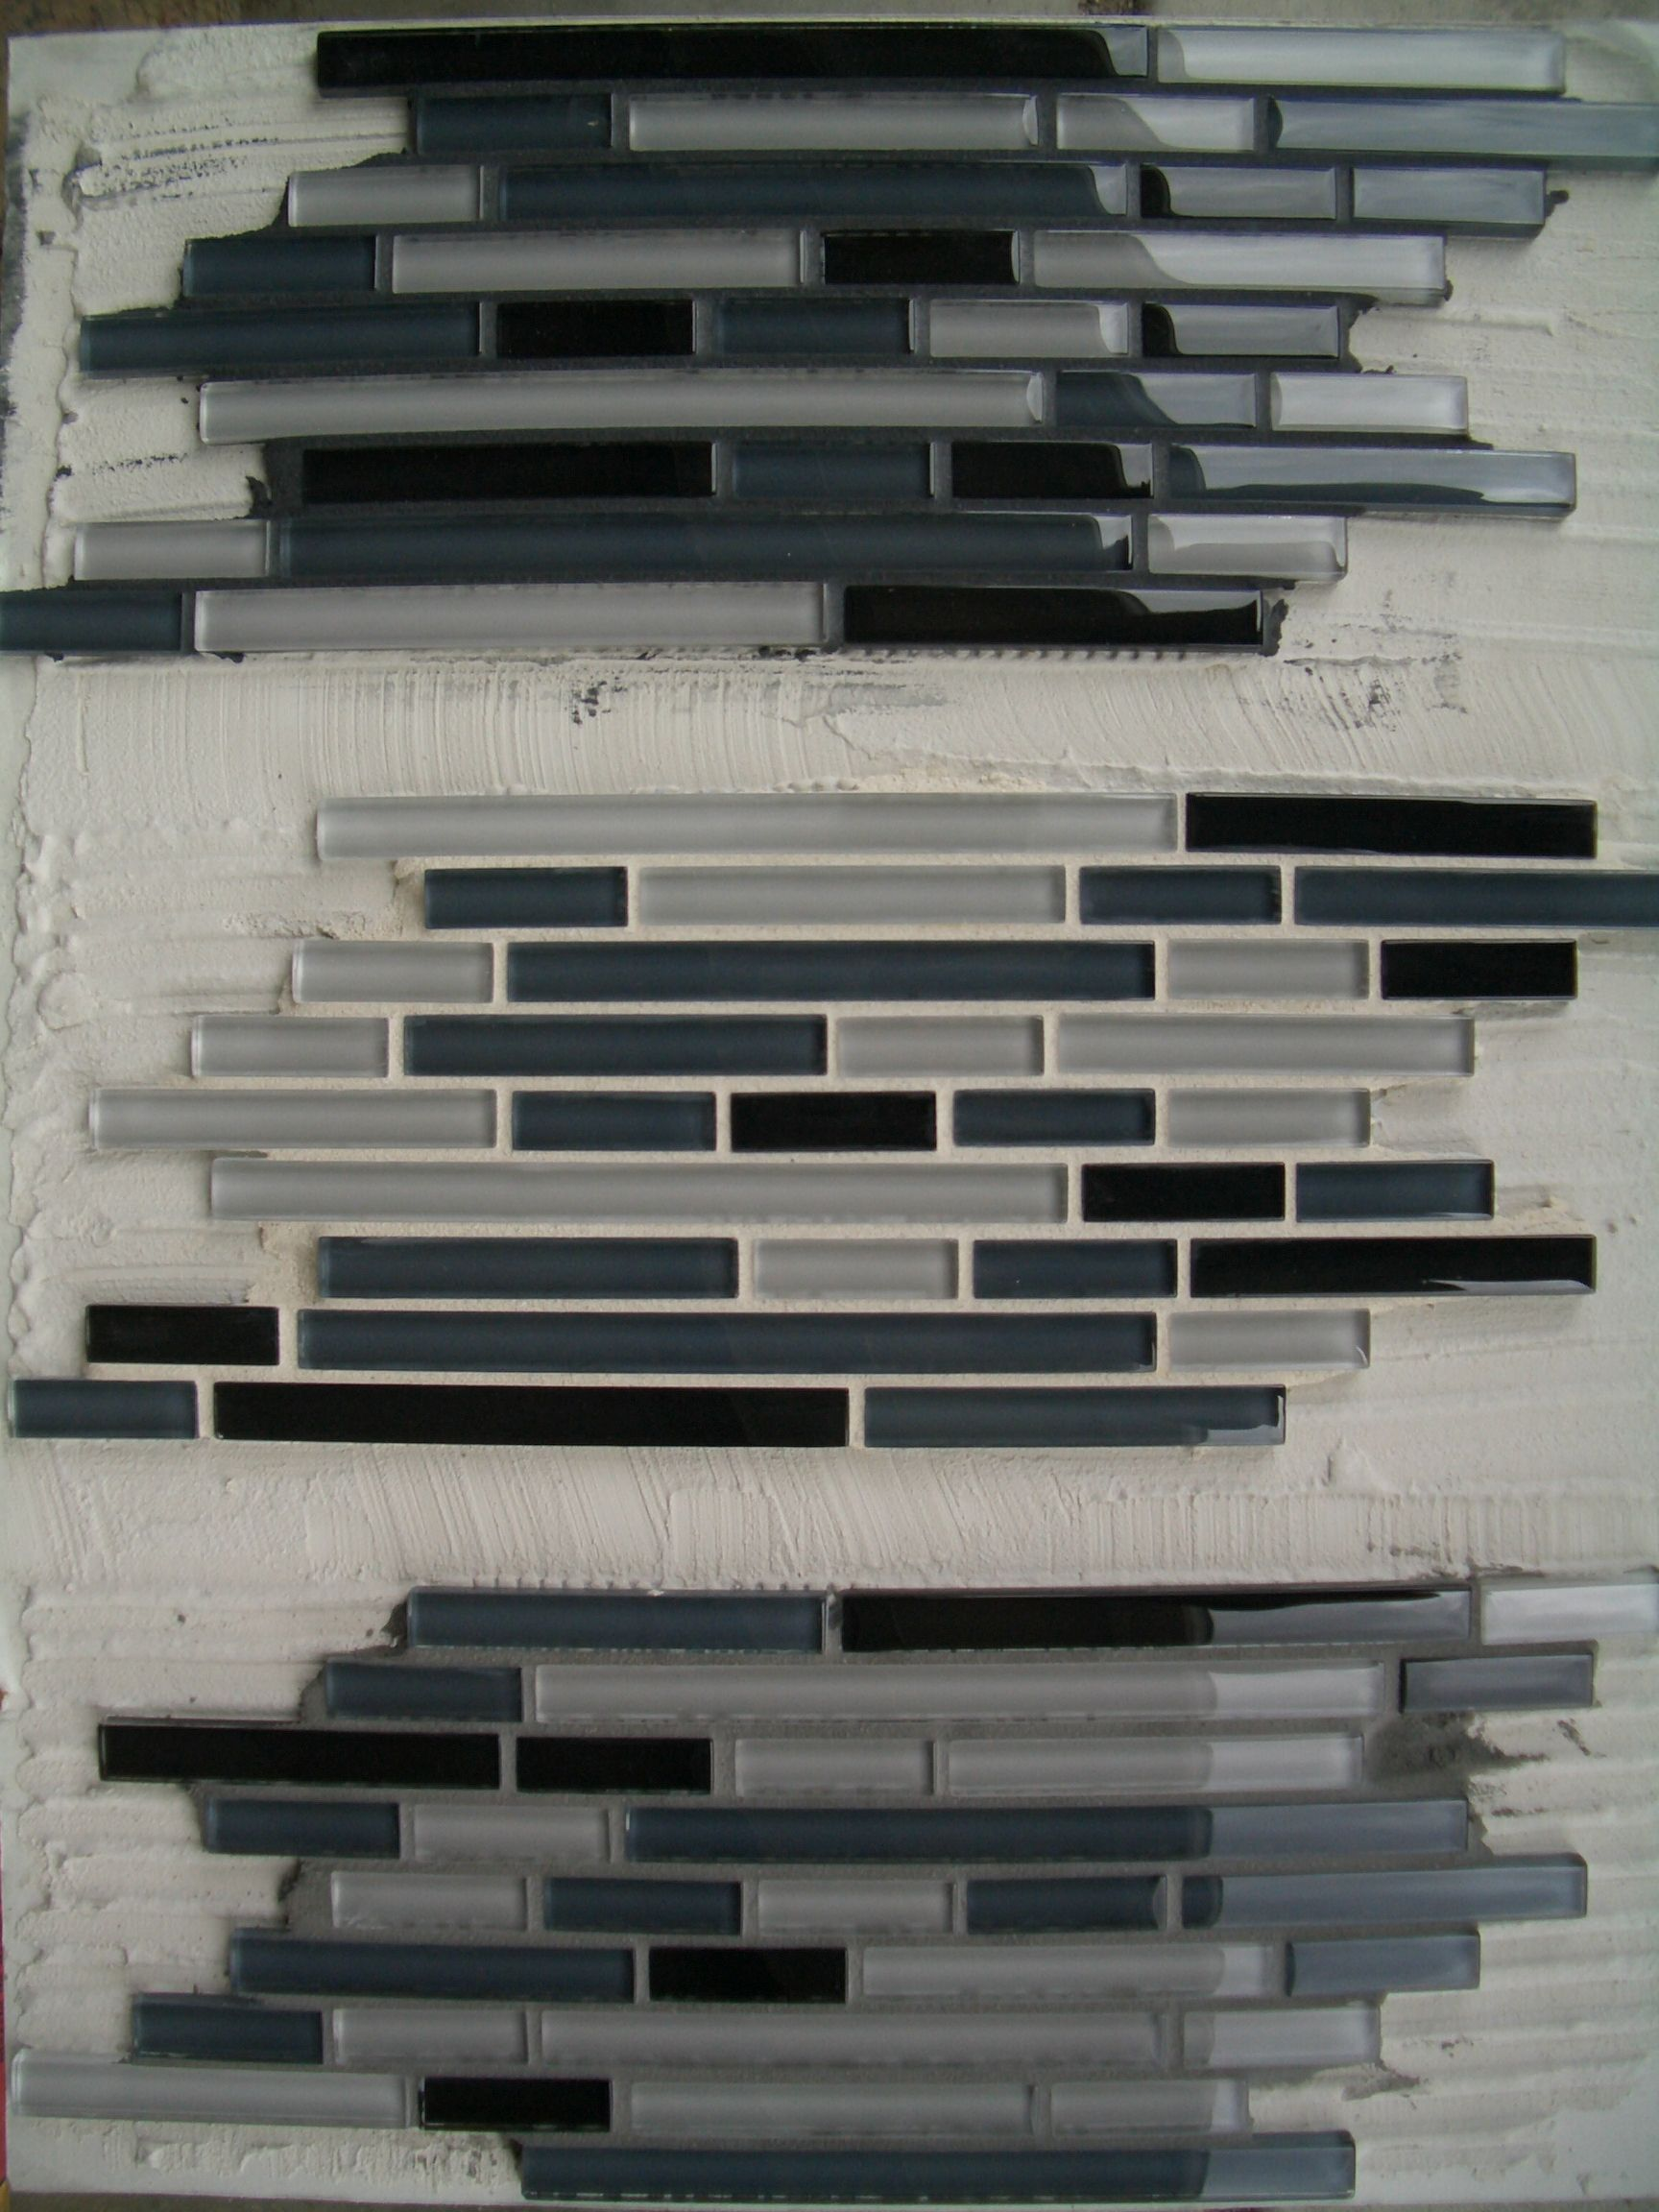 - Black, White, Or Gray Grout? I Am Glad Someone Took The Time To